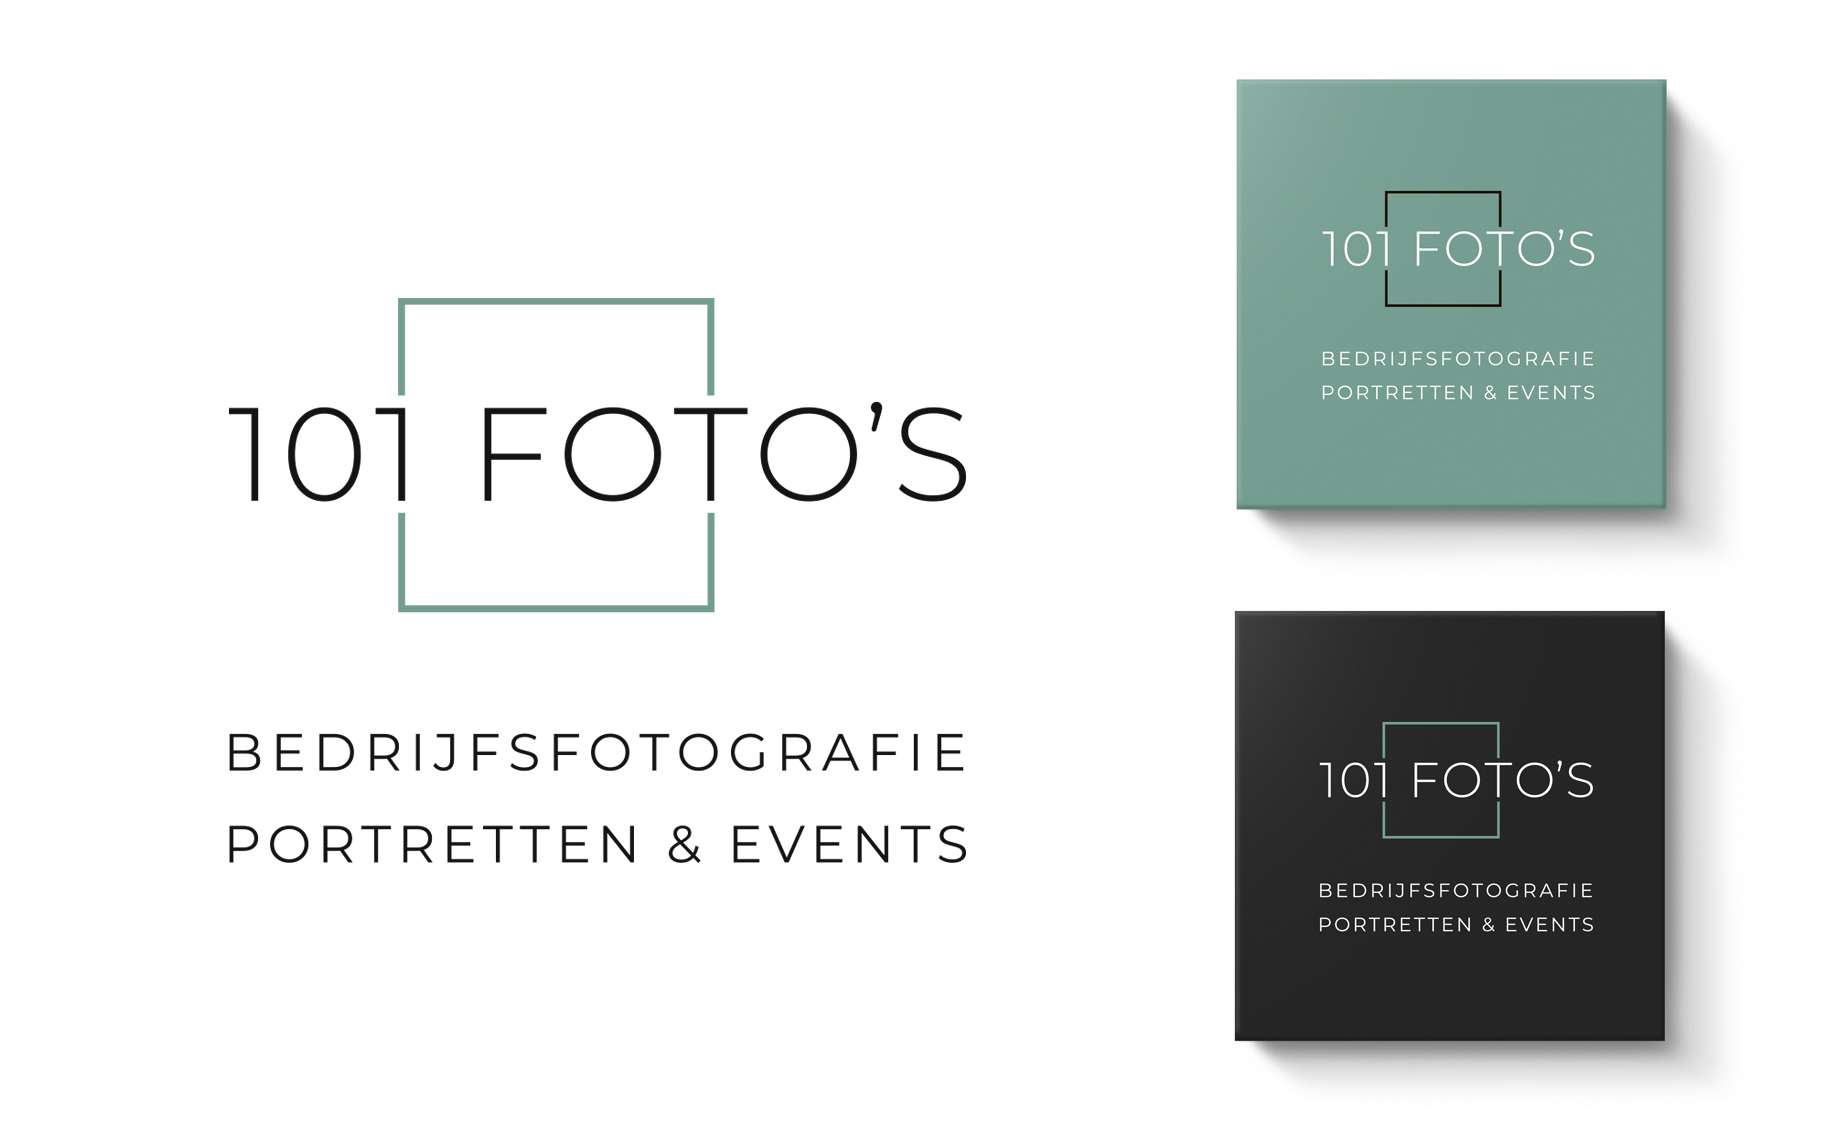 101fotos_logo